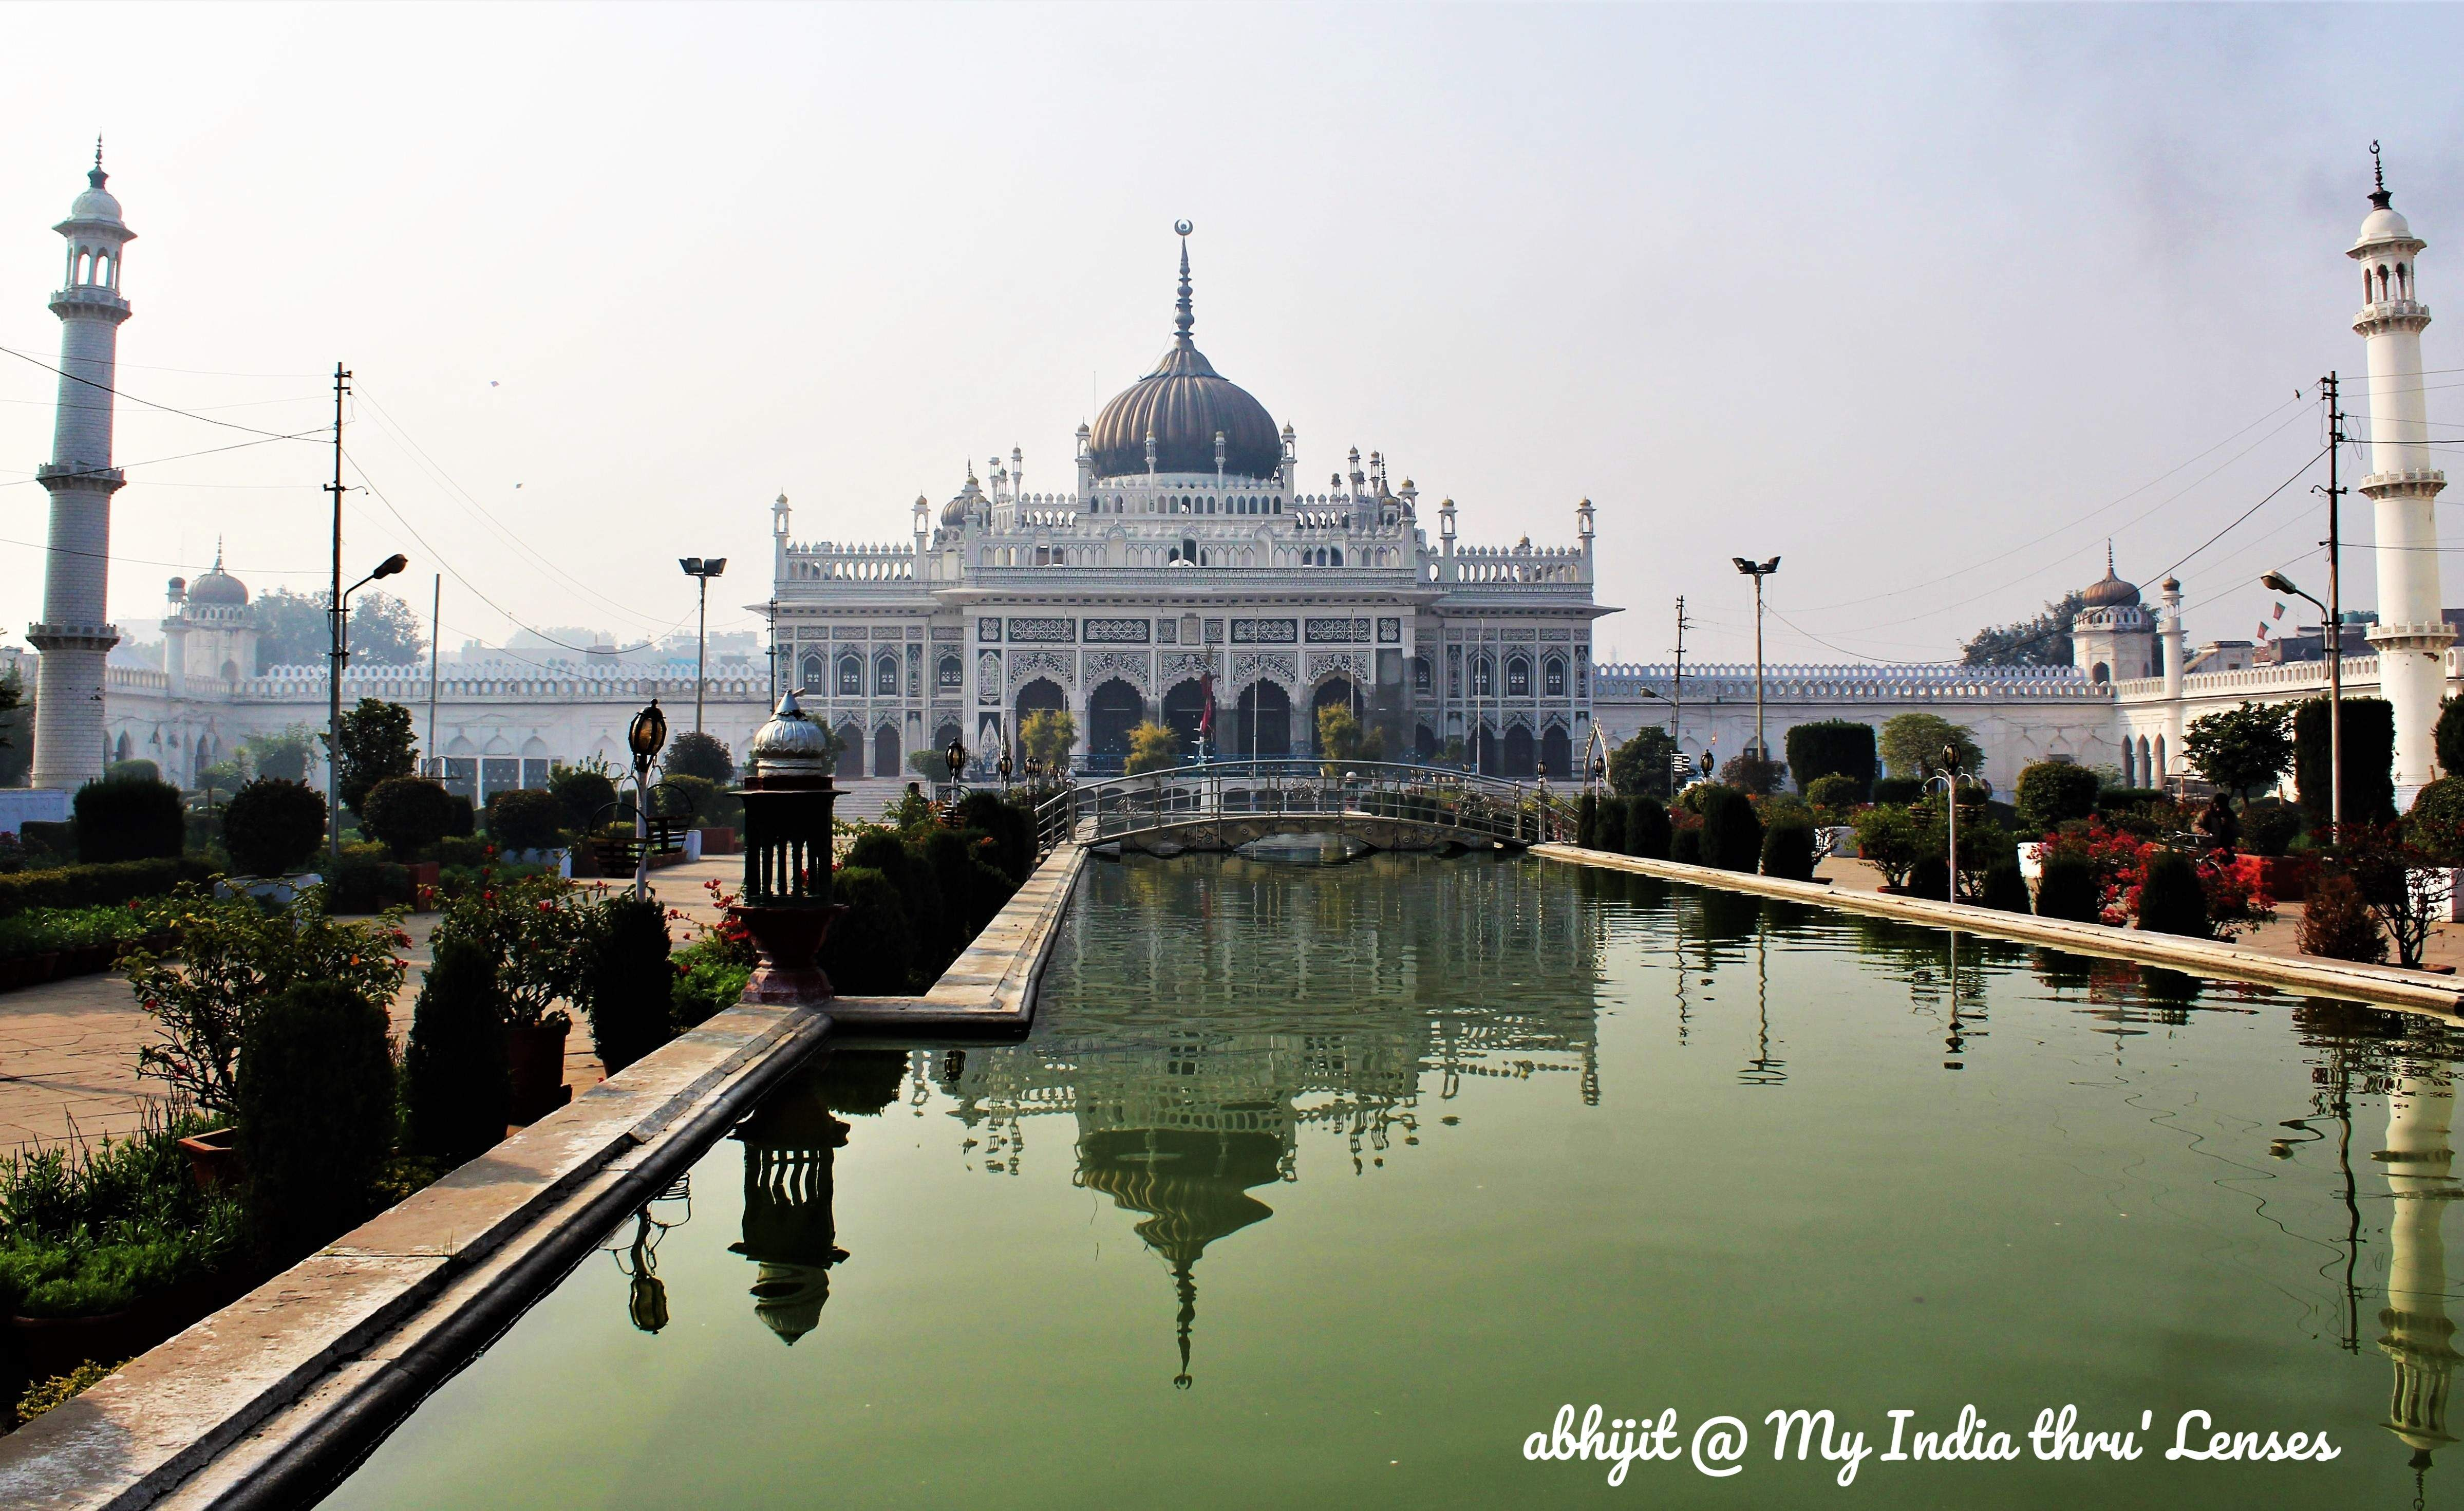 The Chhota Imambara